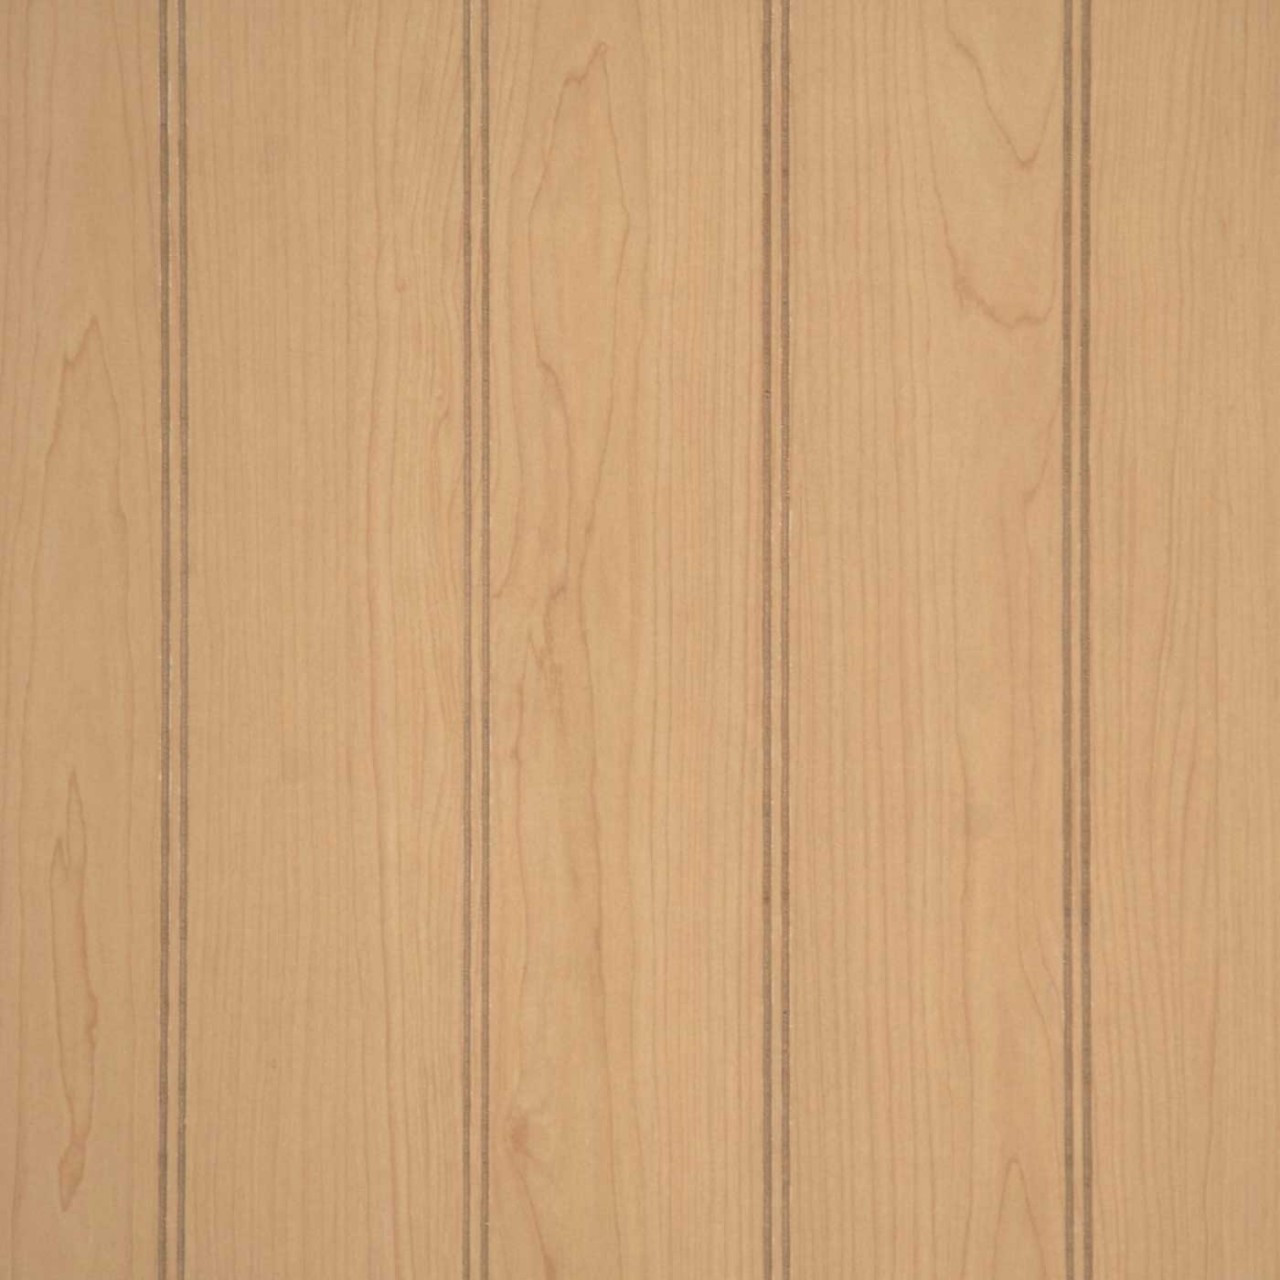 4 8 Wall Paneling : Wall paneling quot wide beadboard ultima maple mm